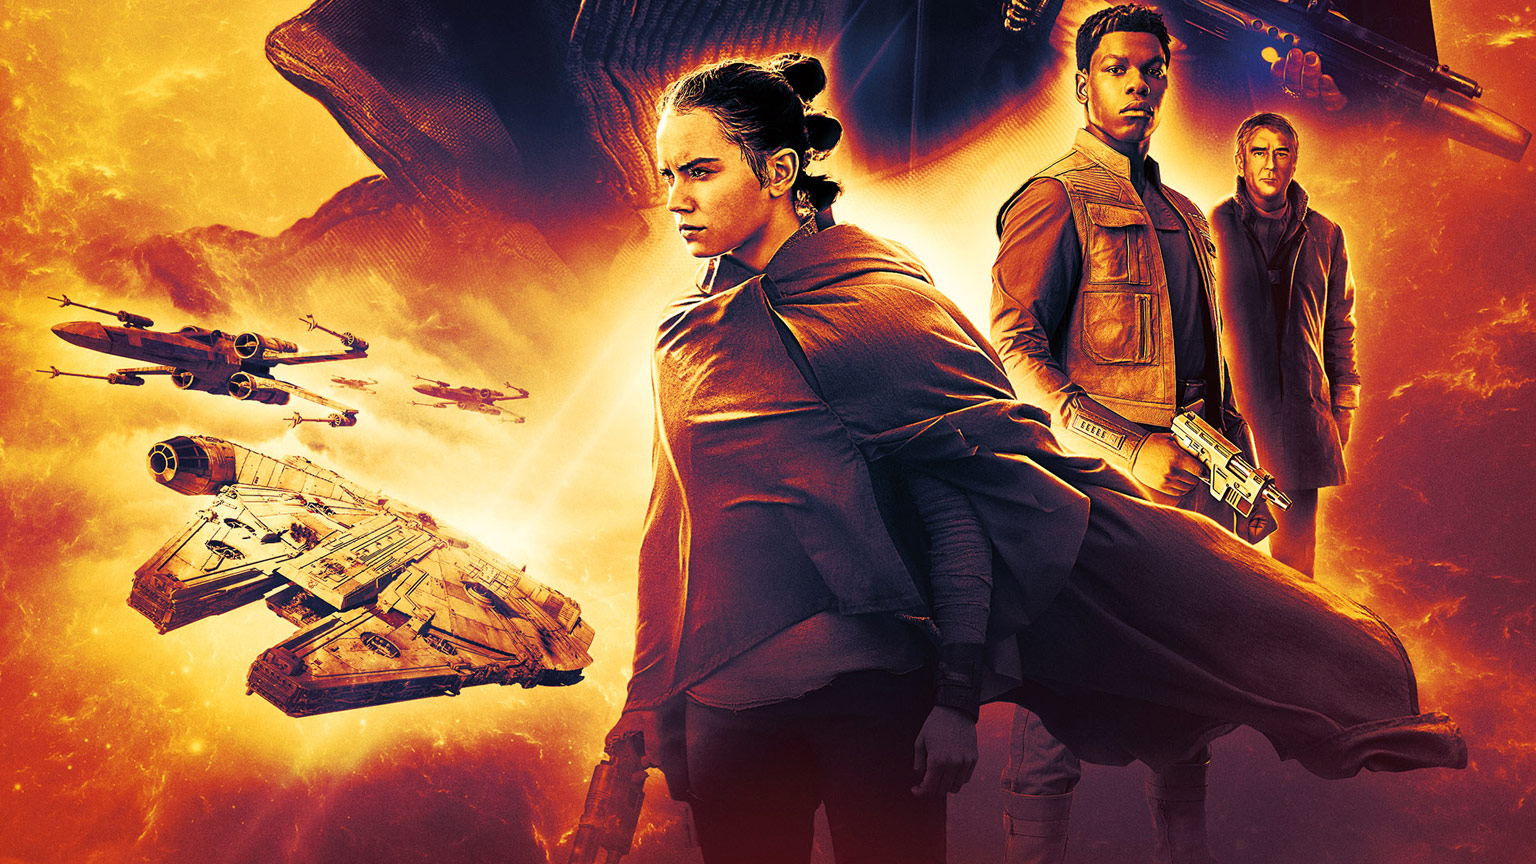 Rey, Finn, and Wedge Antilles on the cover of Resistance Reborn.